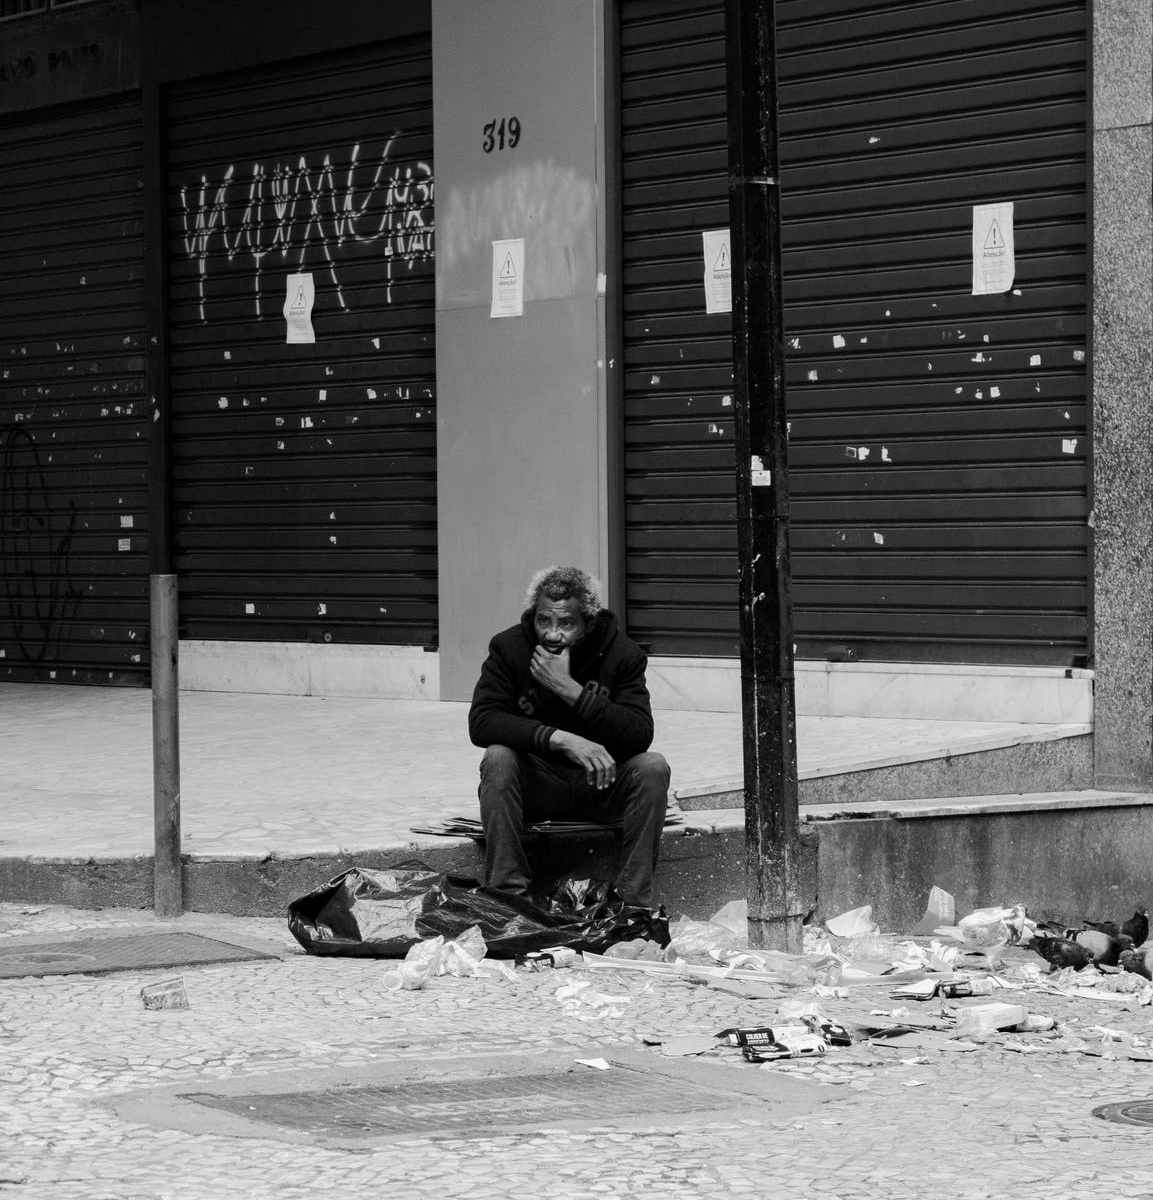 Psychotic black man sitting on sidewalk next to garbage on ground